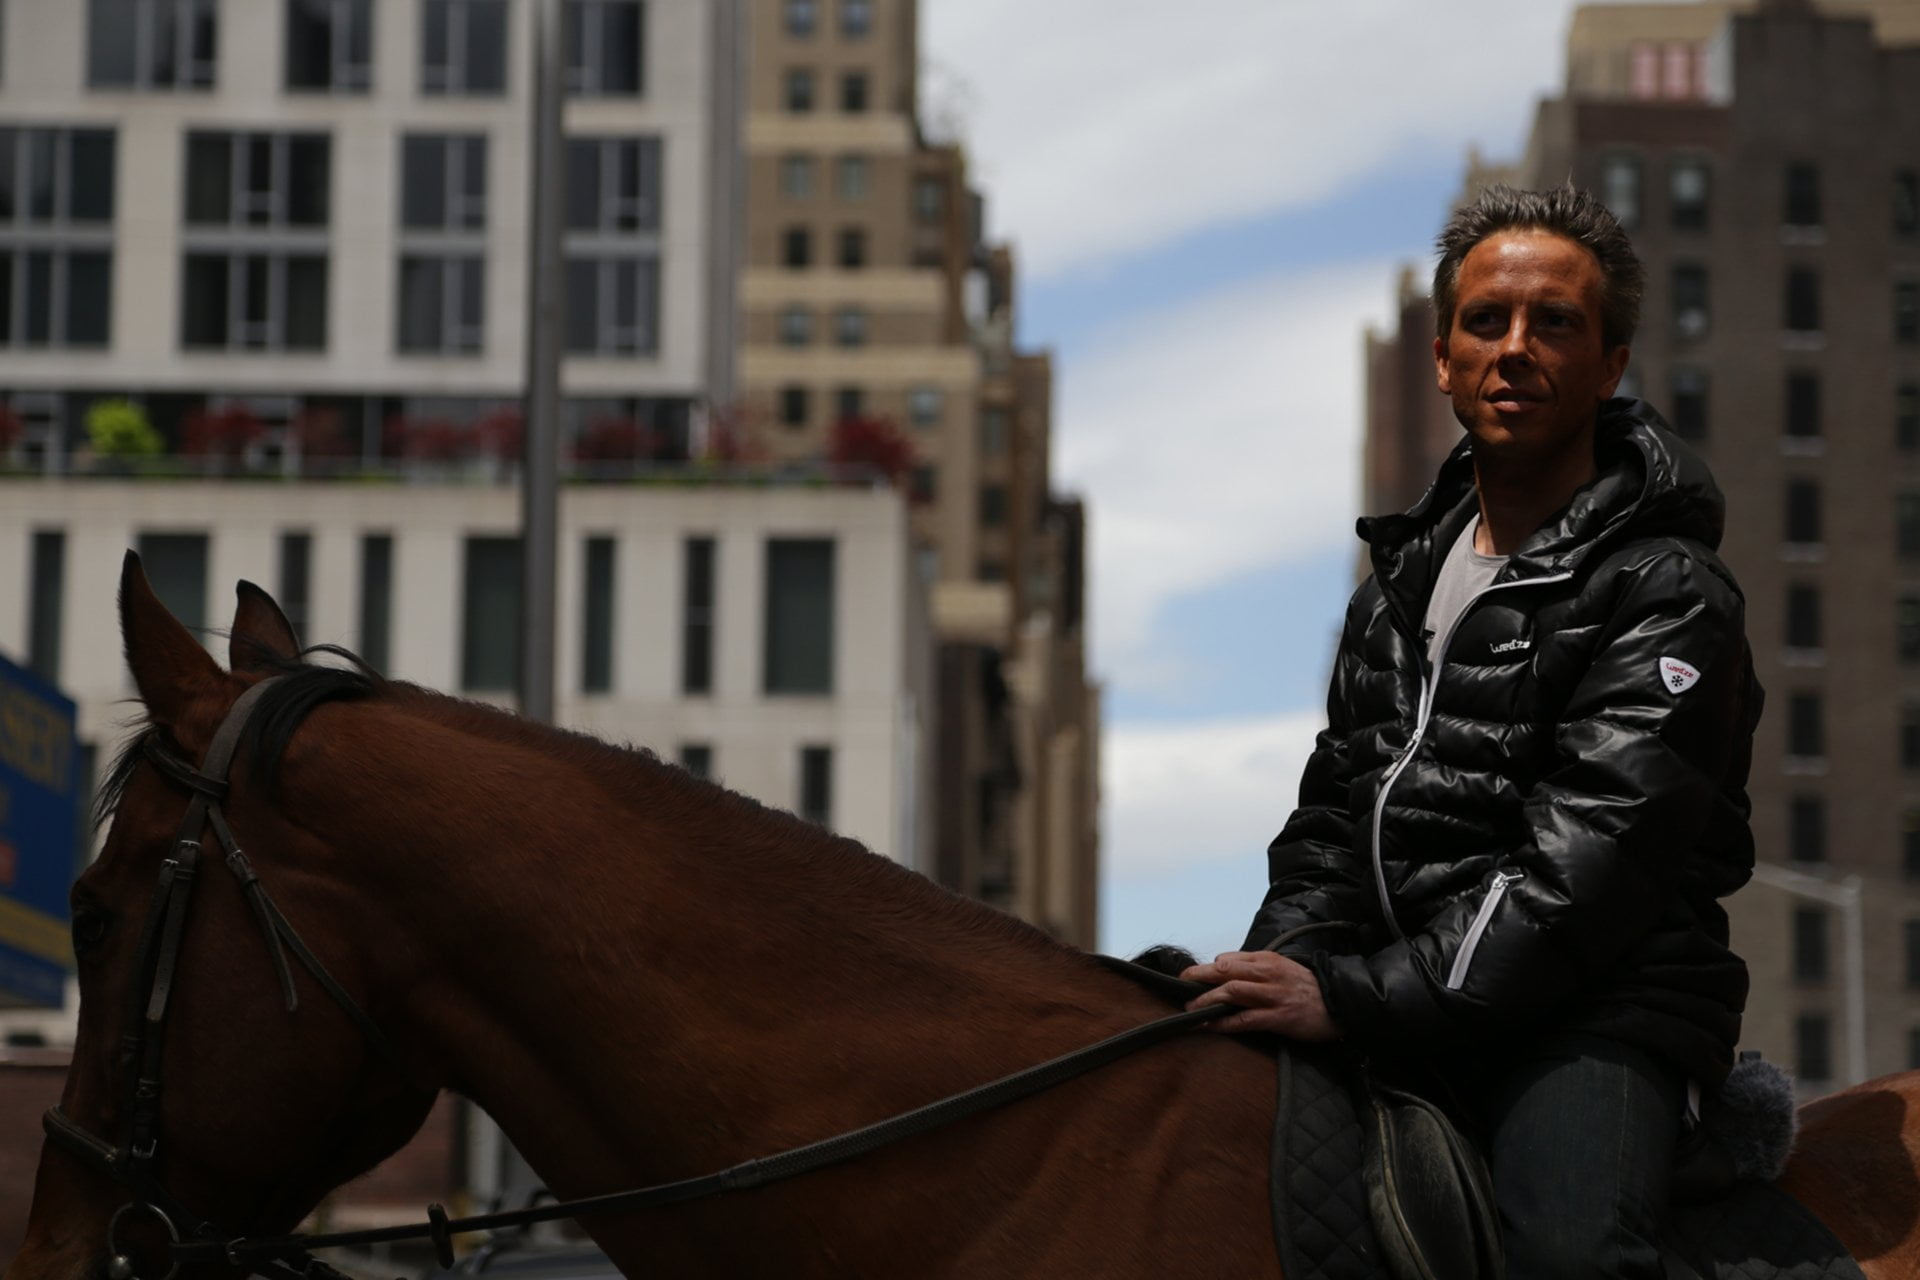 Thierry Costeseque on horseback, Broadway and 30th in Manhattan.